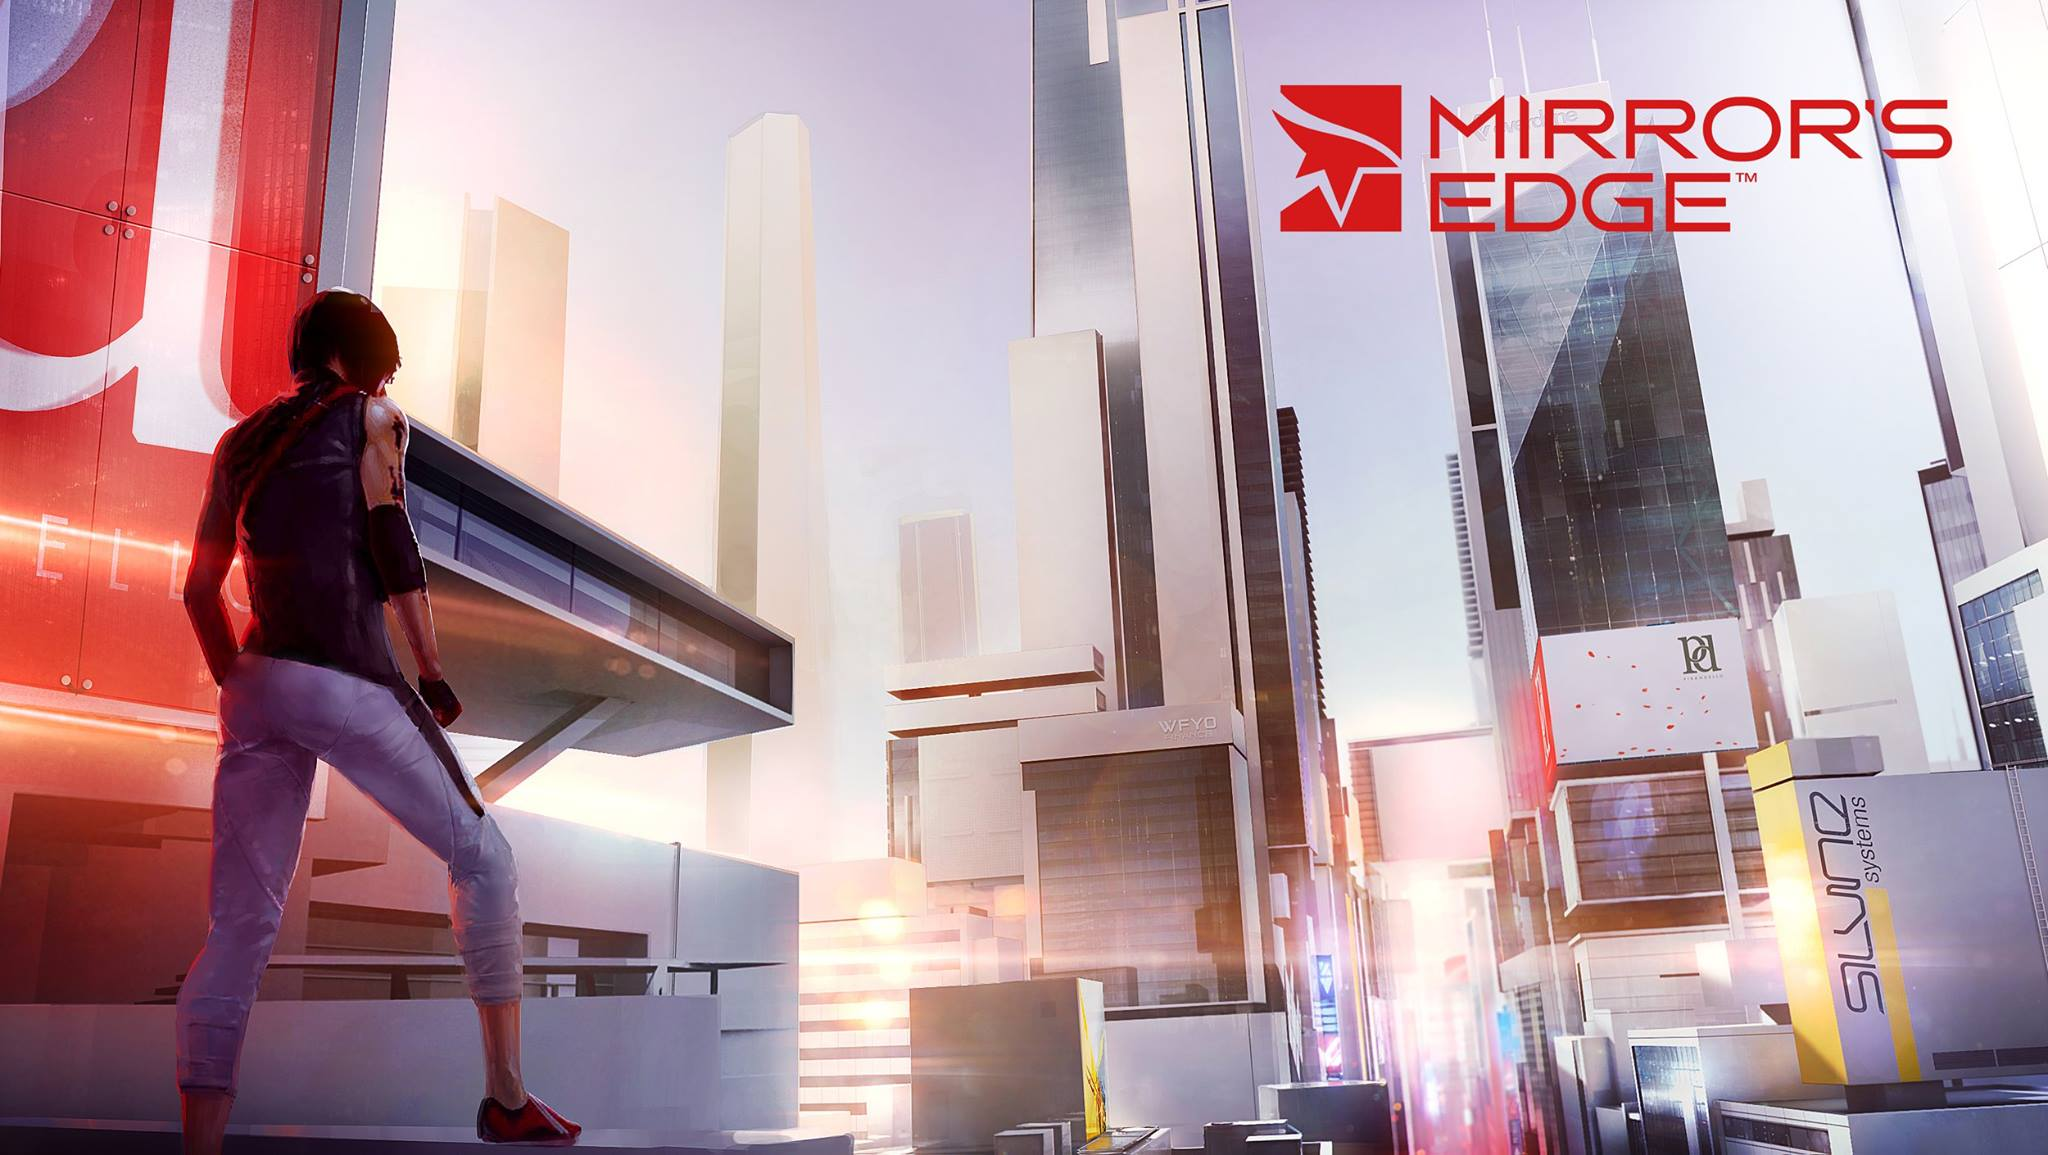 mirrors-edge-2-art